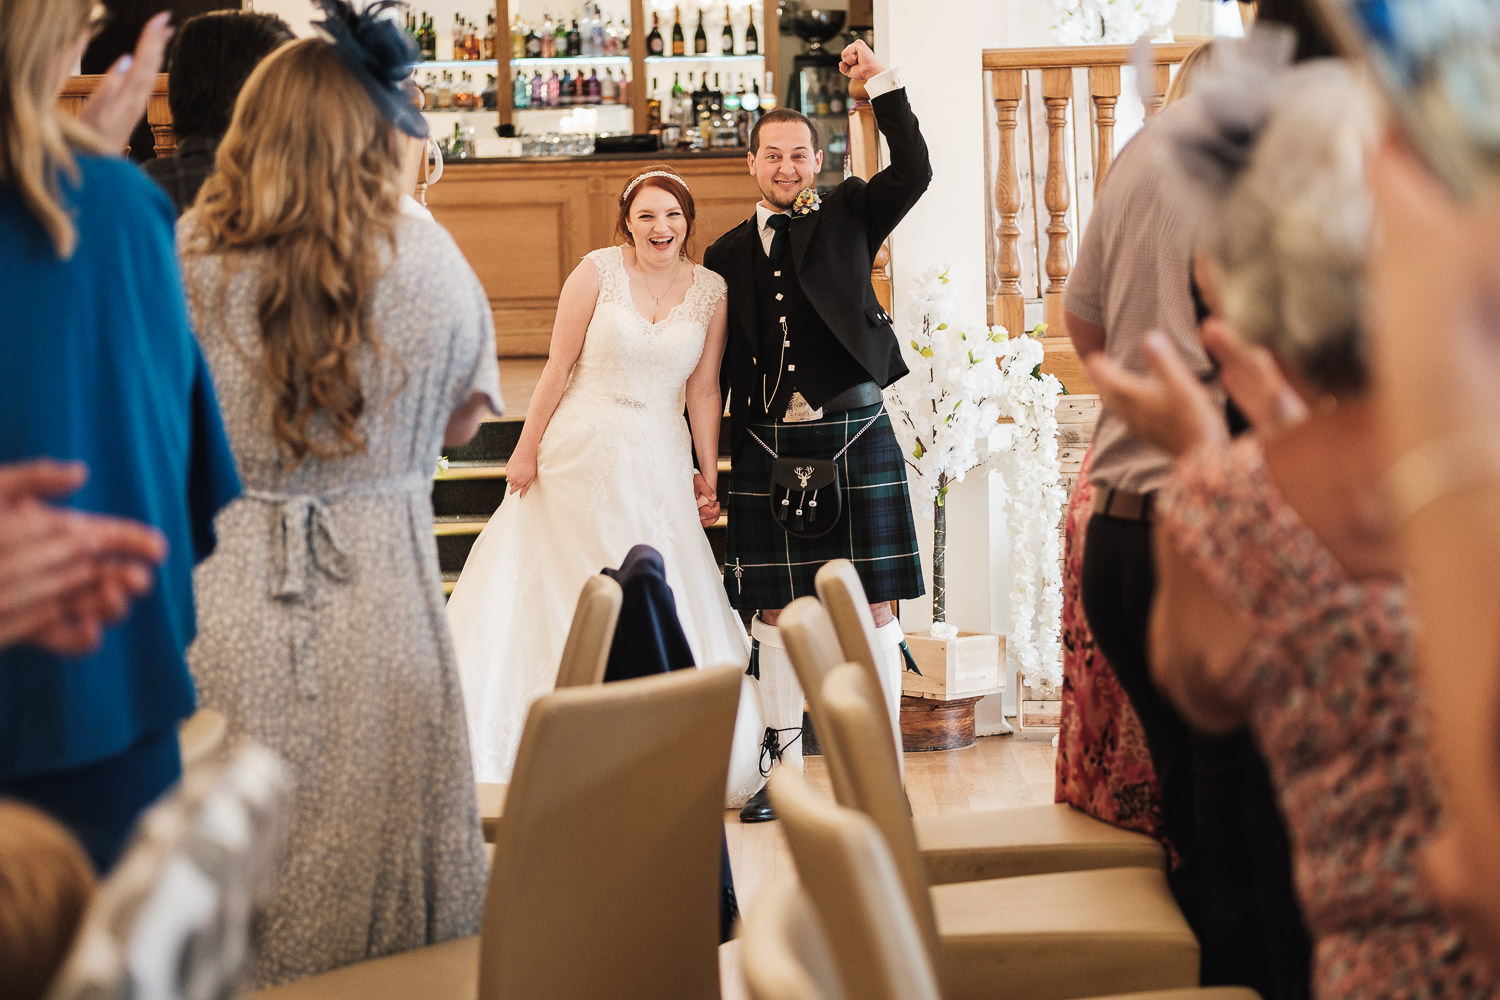 The Wedding couple are welcomed into their West Tower Wedding Reception by their guests